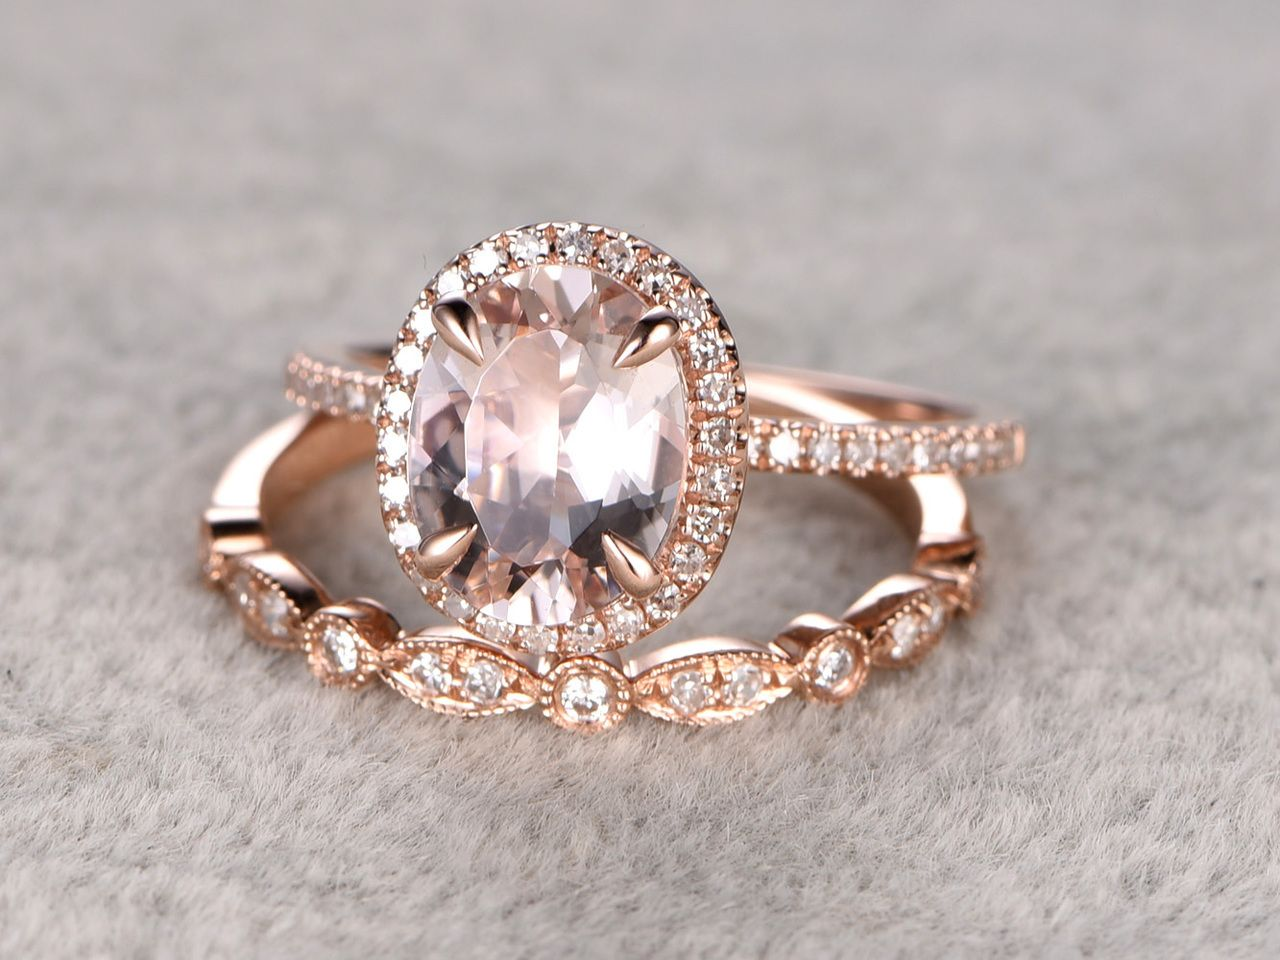 18 to 2 carat oval morganite wedding set diamond bridal ring 14k rose gold halo art - Morganite Wedding Ring